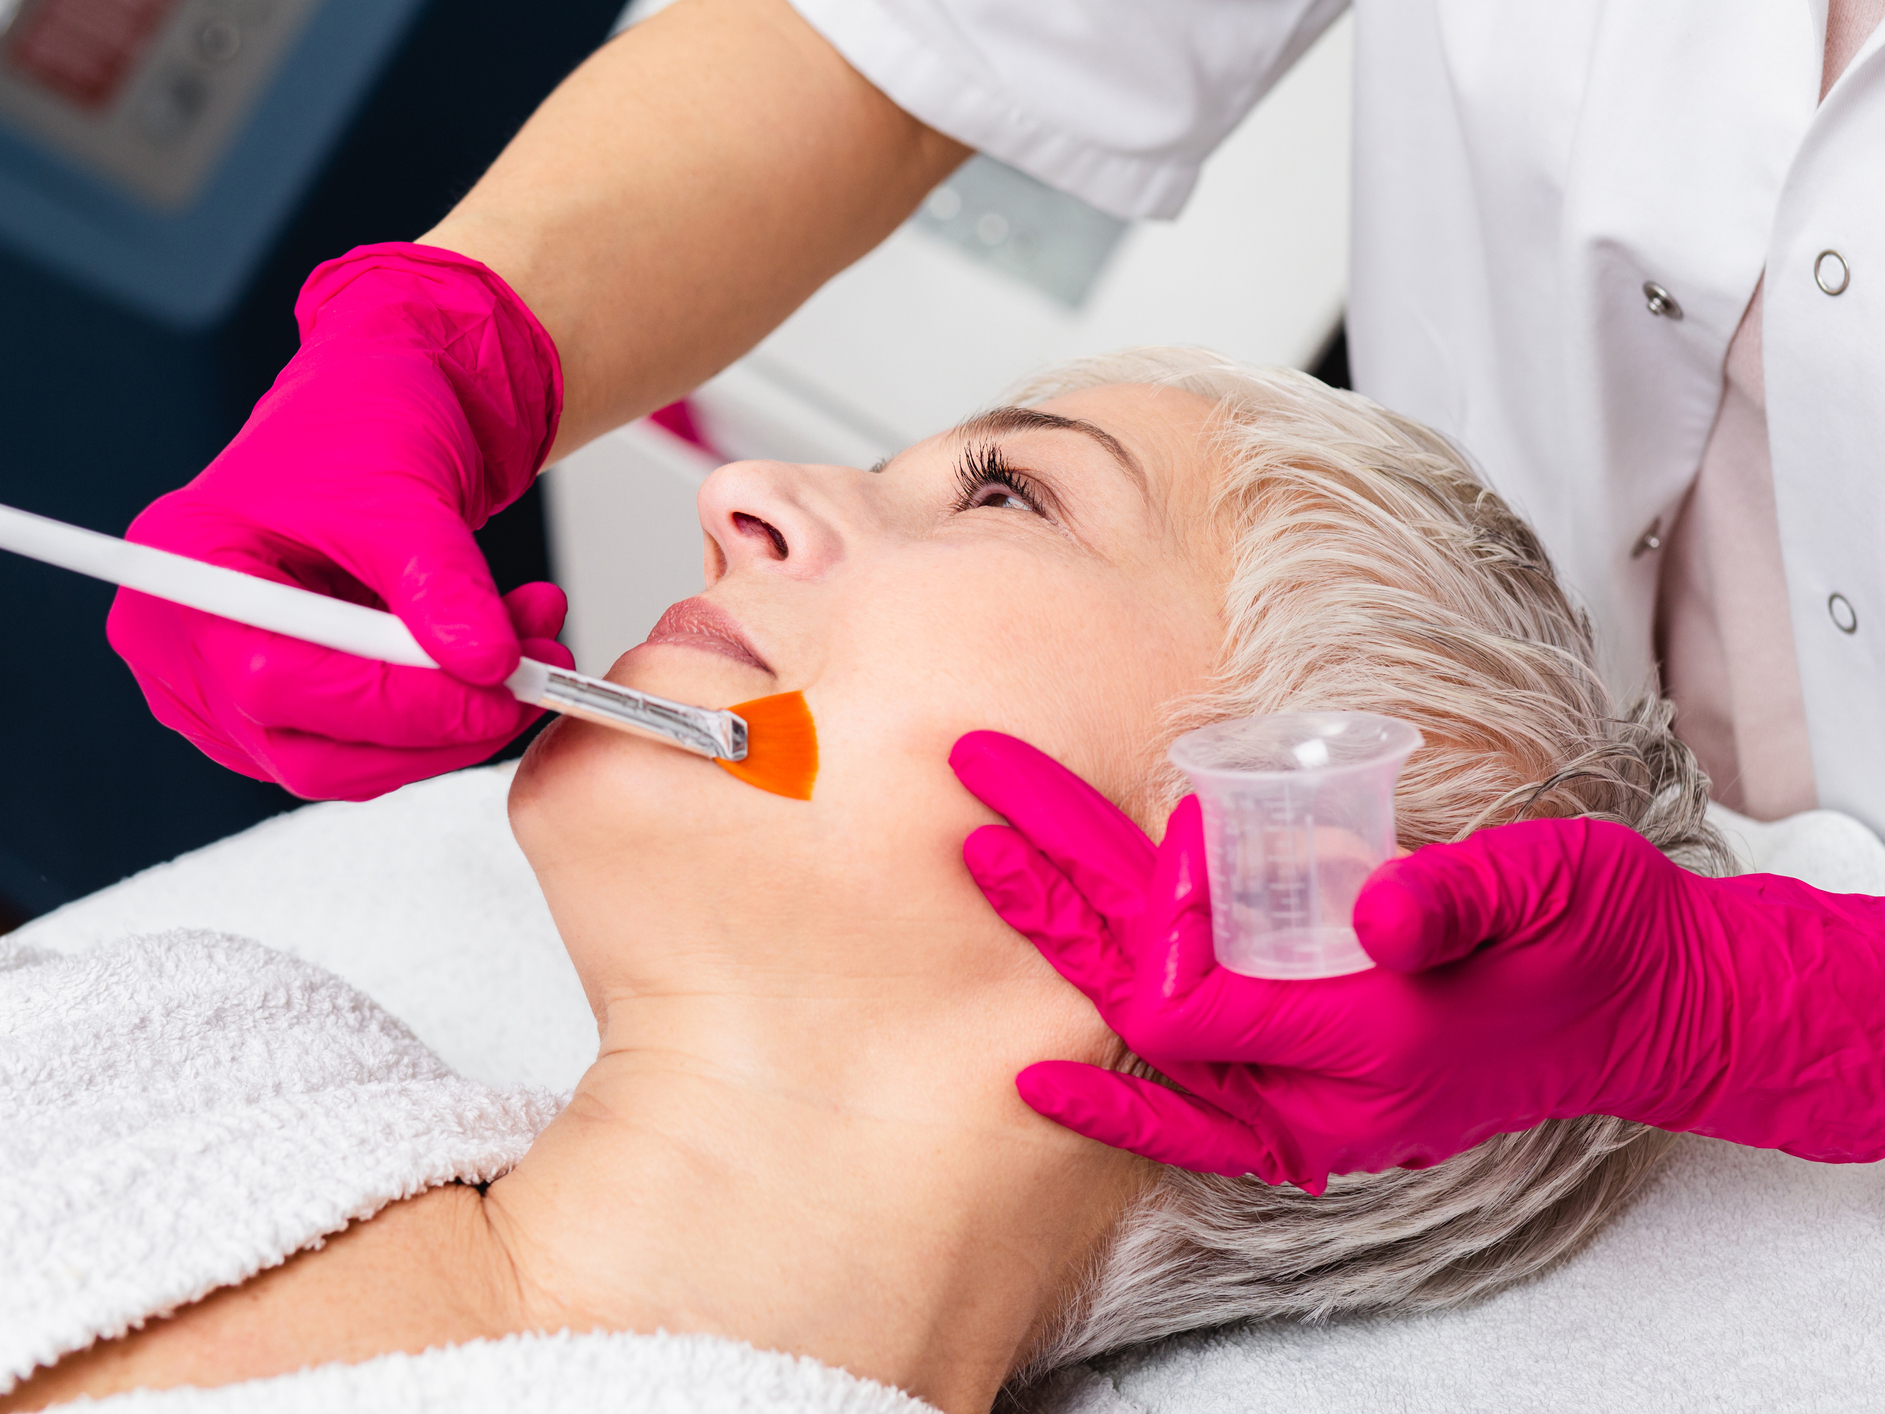 What to expect during a dermal filler procedure